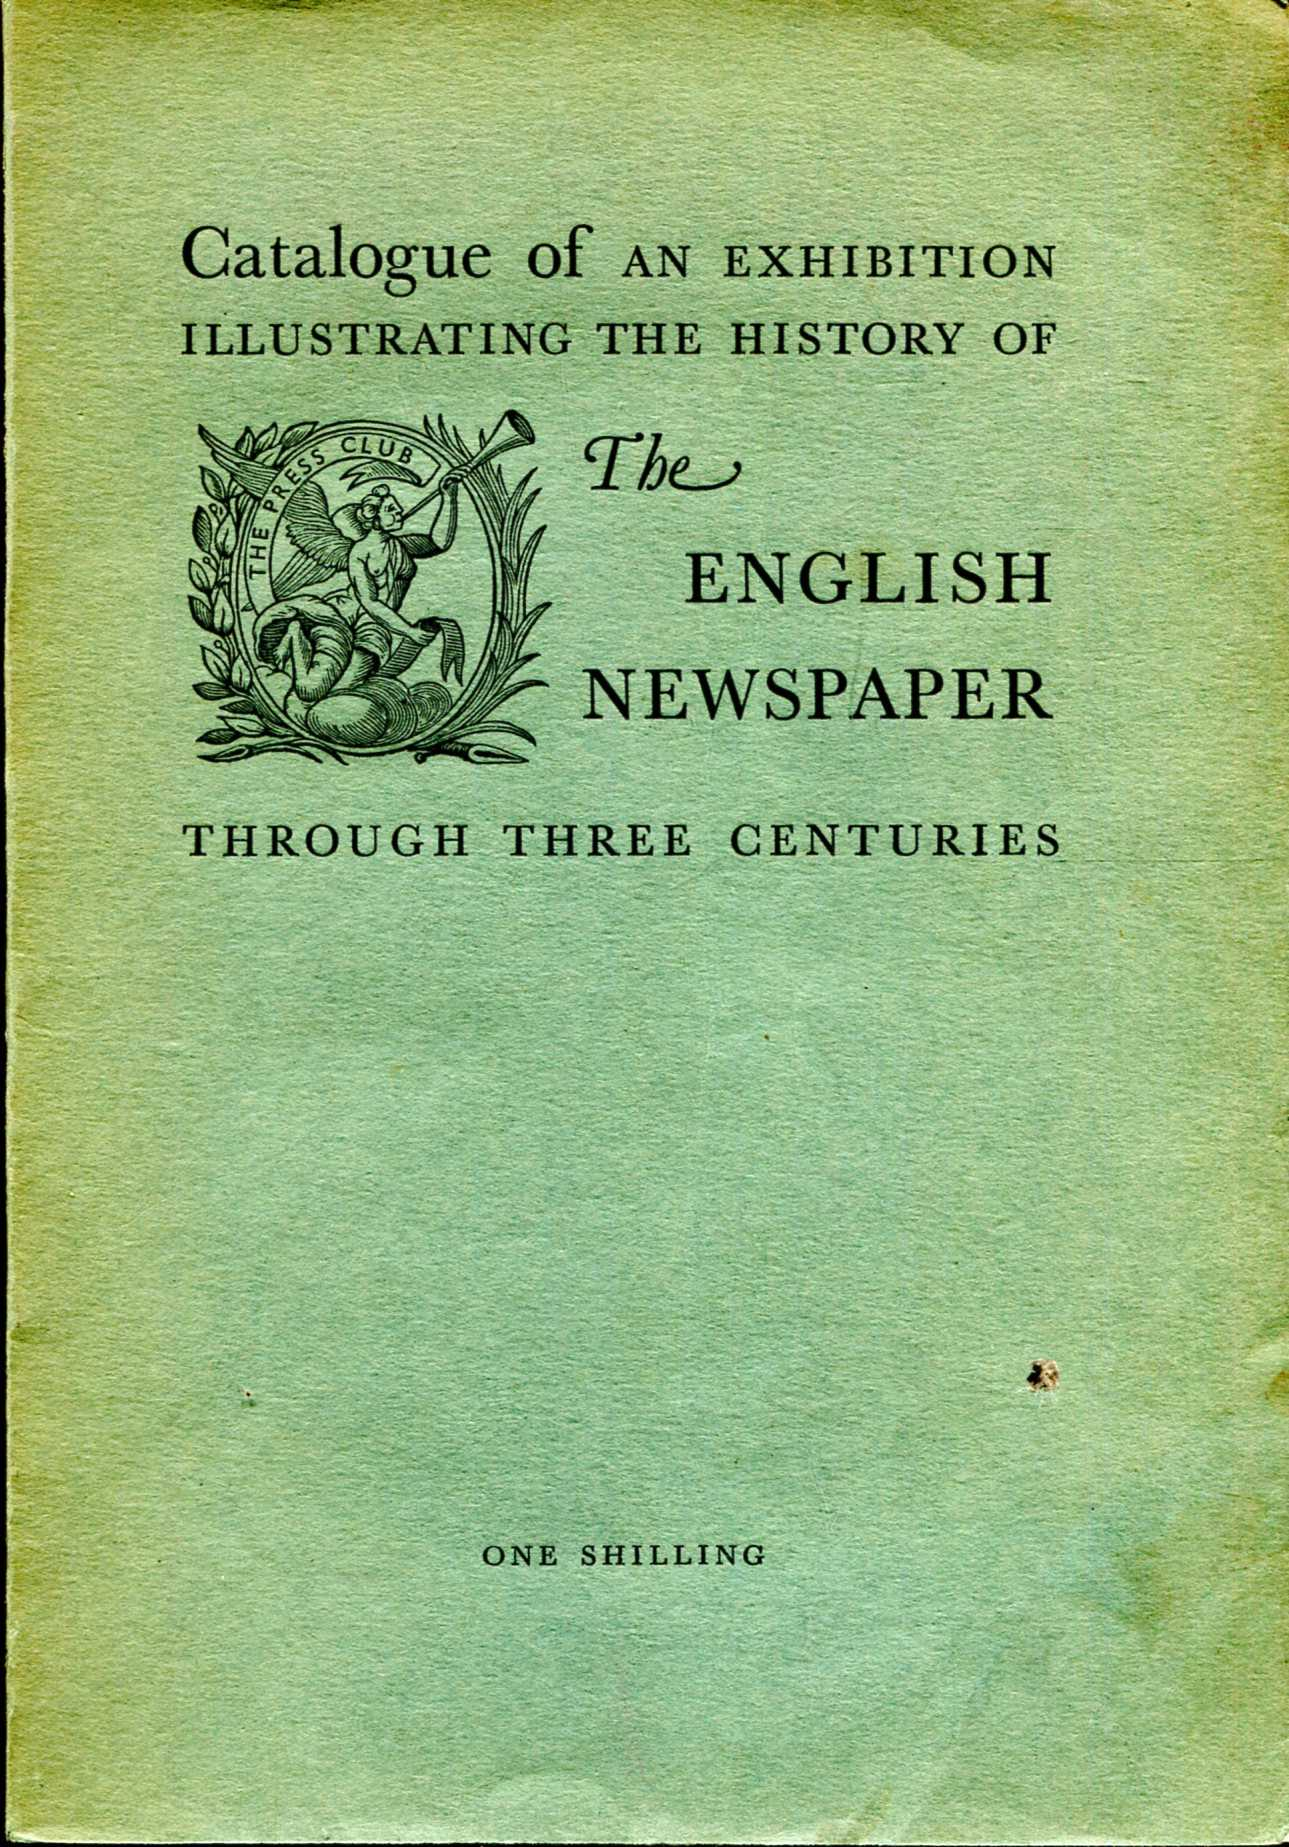 Image for Catalogue of An Exhibition illustrating the History of The English Newspaper through three centuries